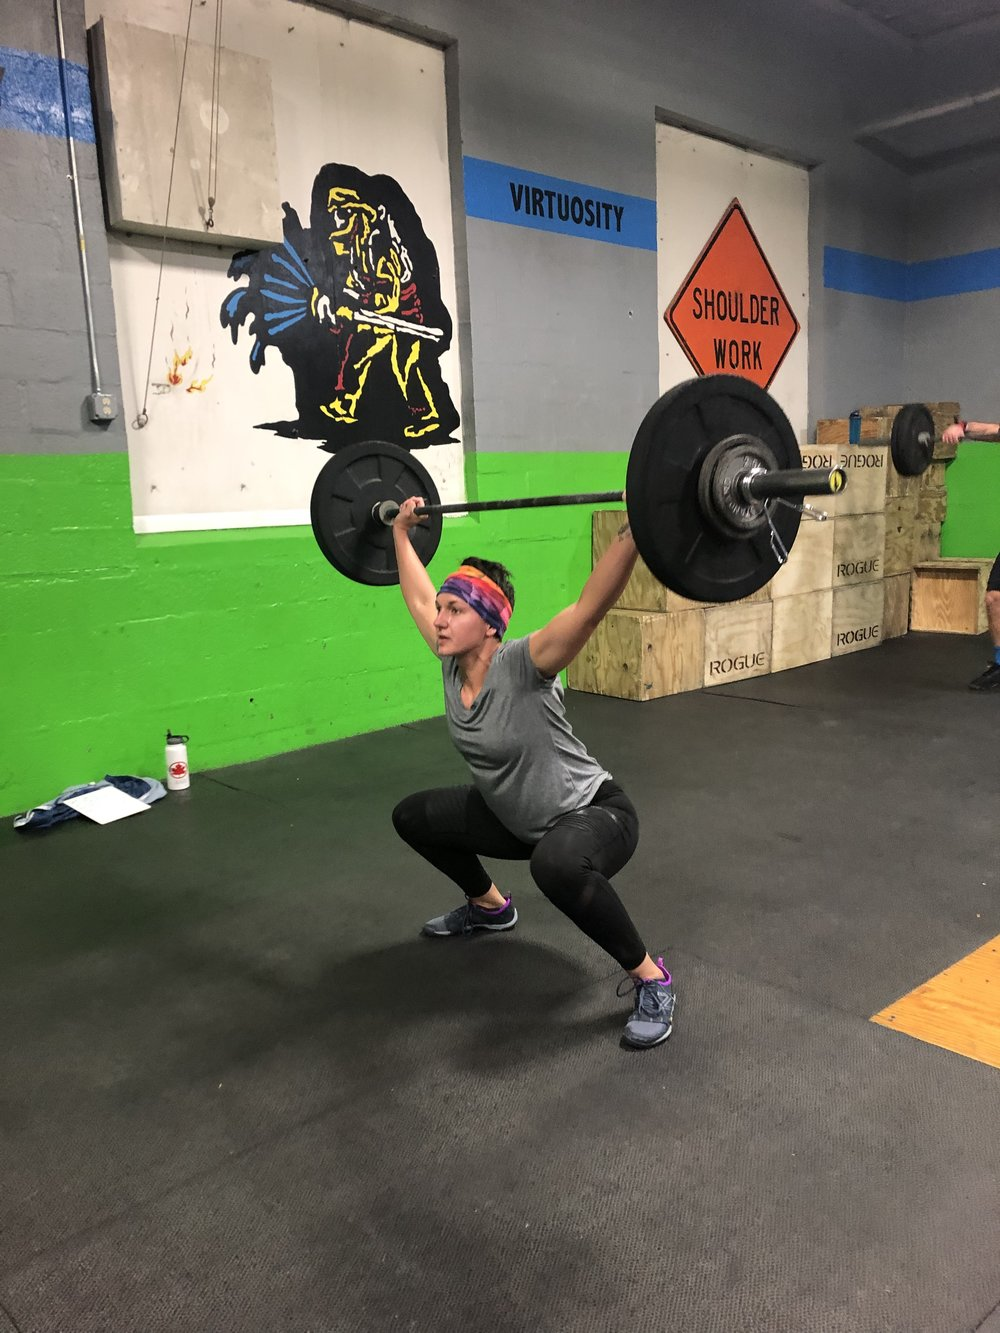 Saturday morning class at 8:30 with Coach SHallon  Wod - Team 3 (30:00 Time Cap)  3 Rnds  40 Cal on Bike  40 HSPU  Then  30 C&J 85/125  30 C&J 95/135  30 c&j 105/145  30 C&J 115/155  30 C&J 125/165  30 C& J 135/185     Skill Work  Pull ups/ CTB Pull ups / MU